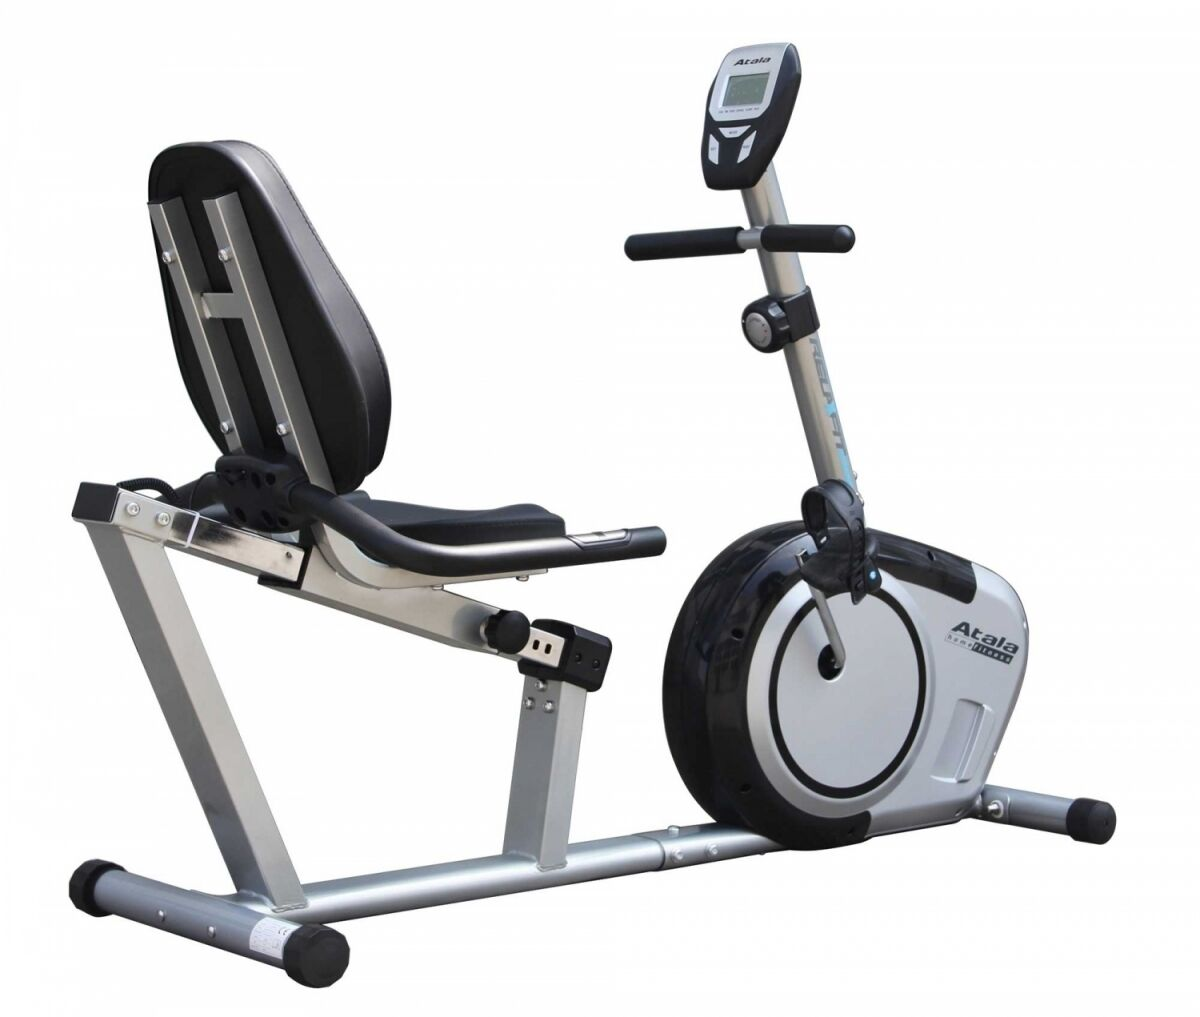 CYCLETTE ATALA RELAXFIT ciclette V1.1 home fitness ciclette RELAXFIT palestra STATIONARY ELETTRICA 166c86